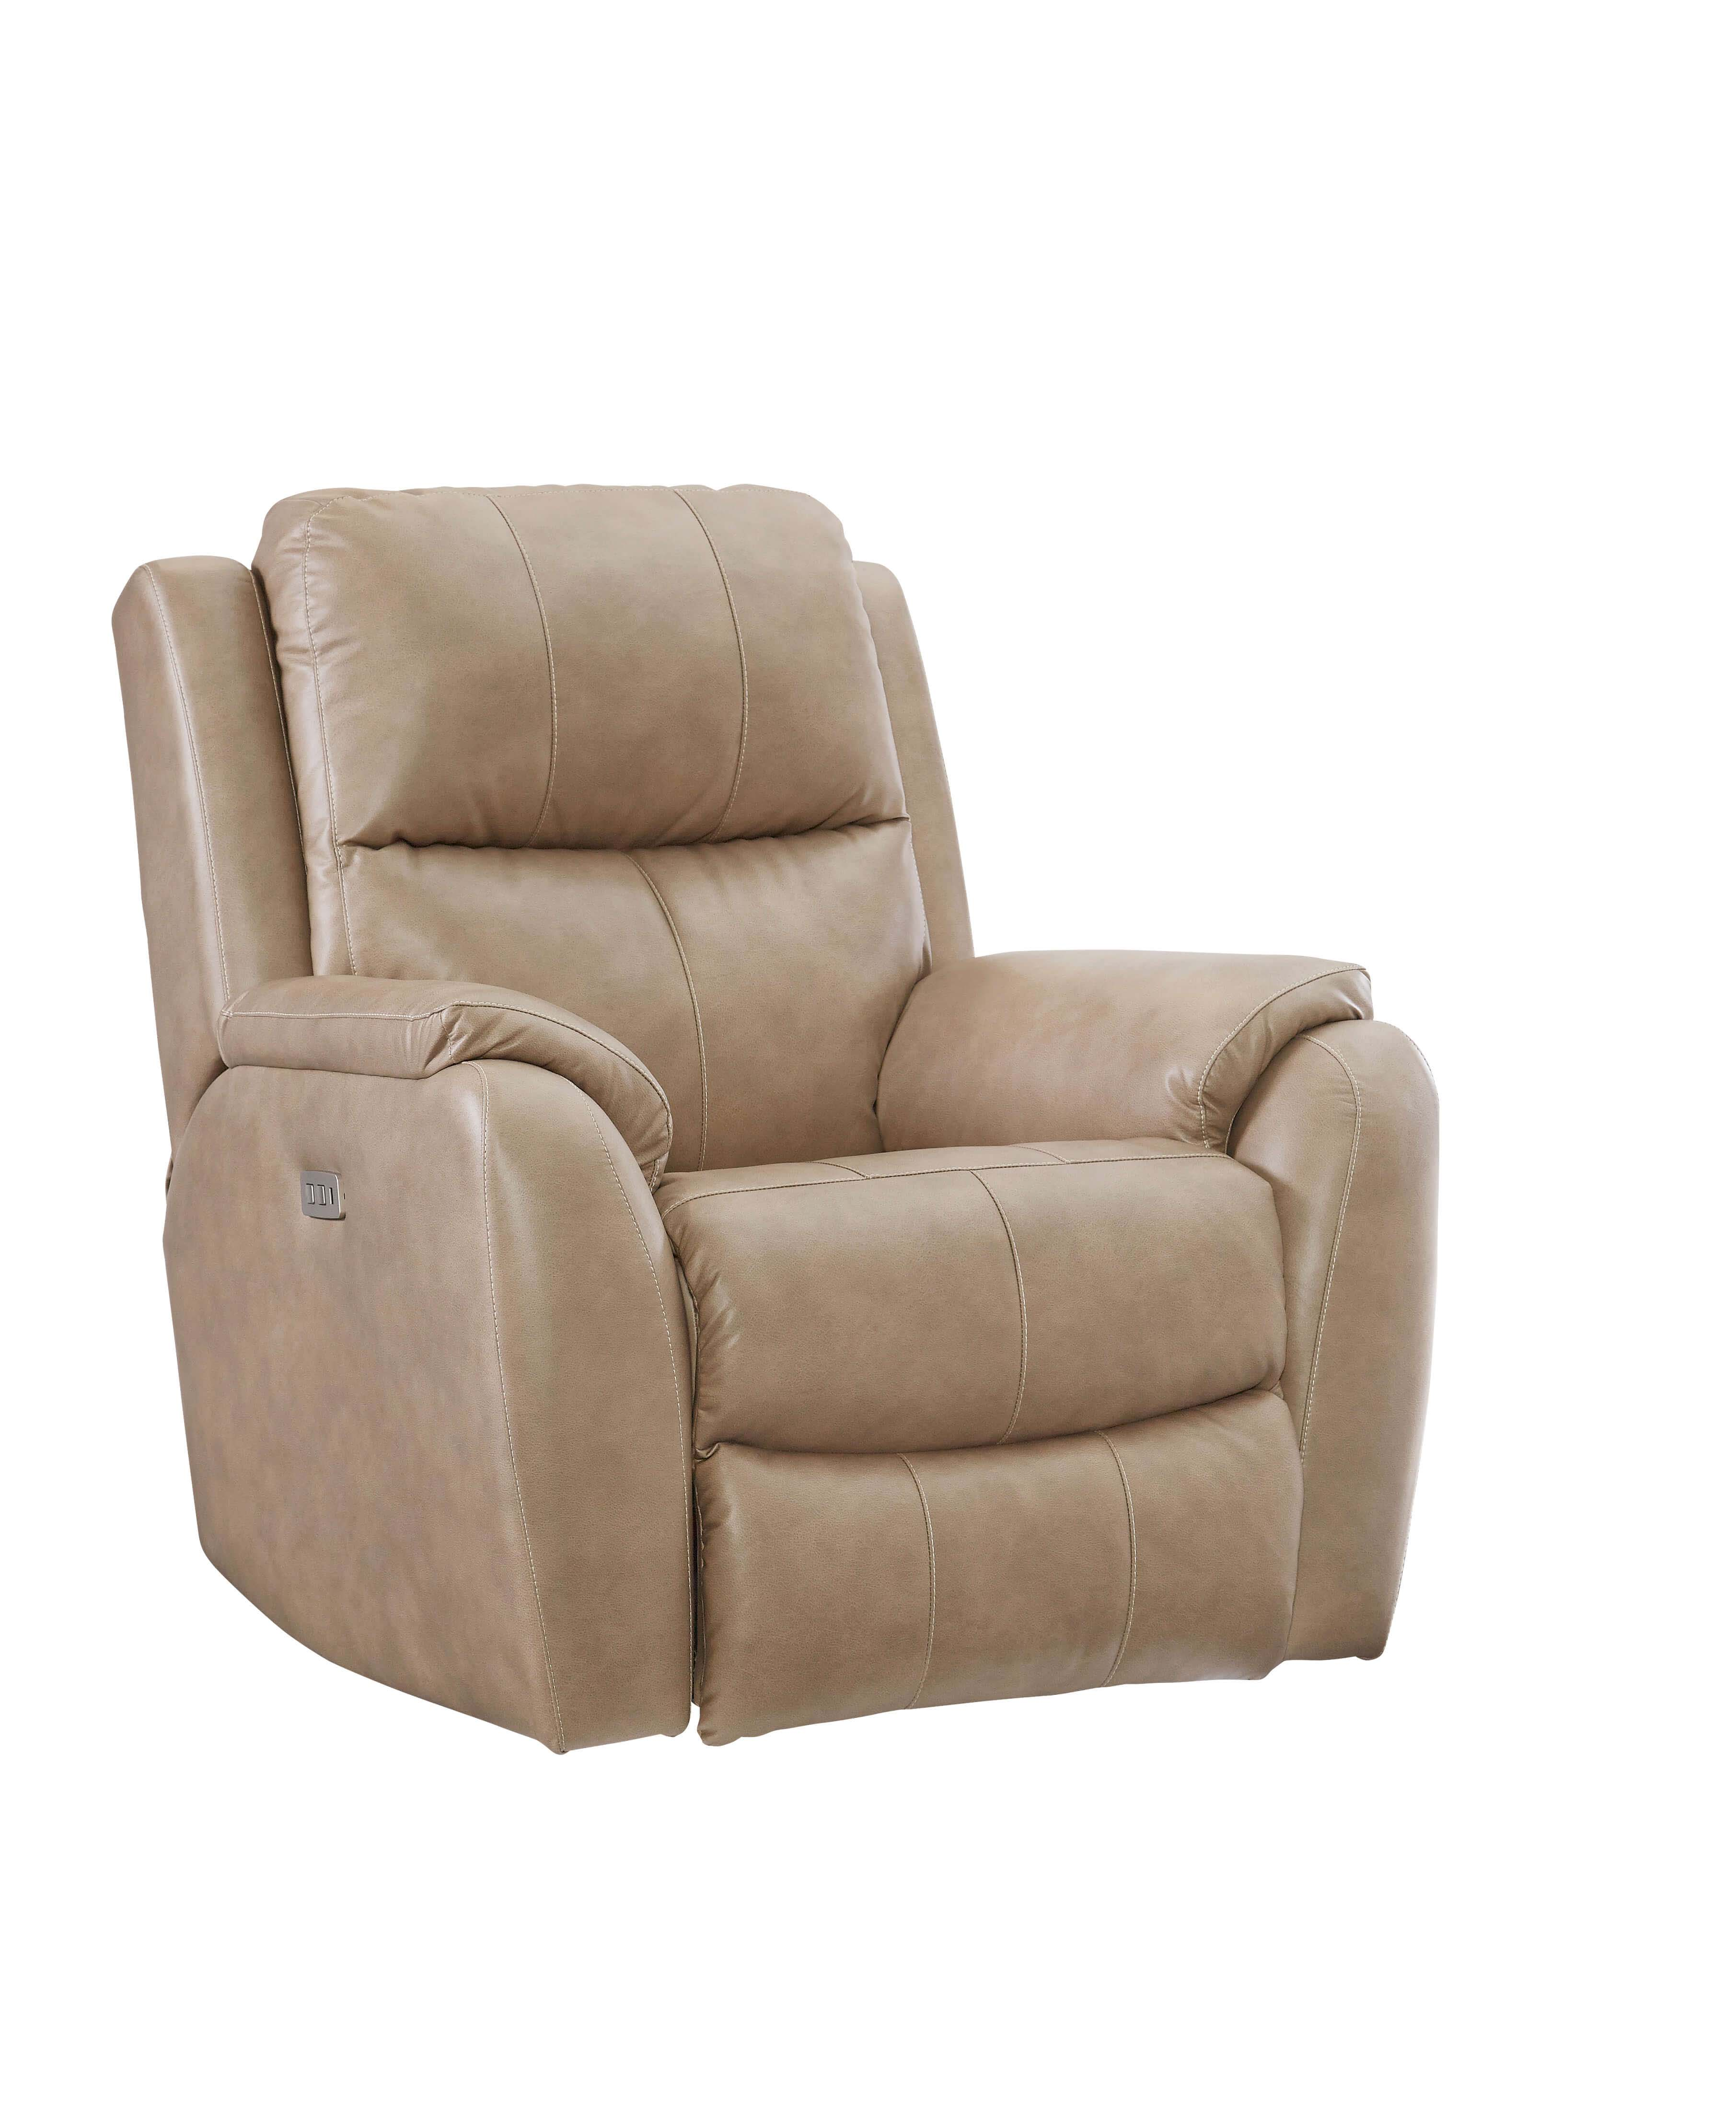 1332 Marquis Recliner Image